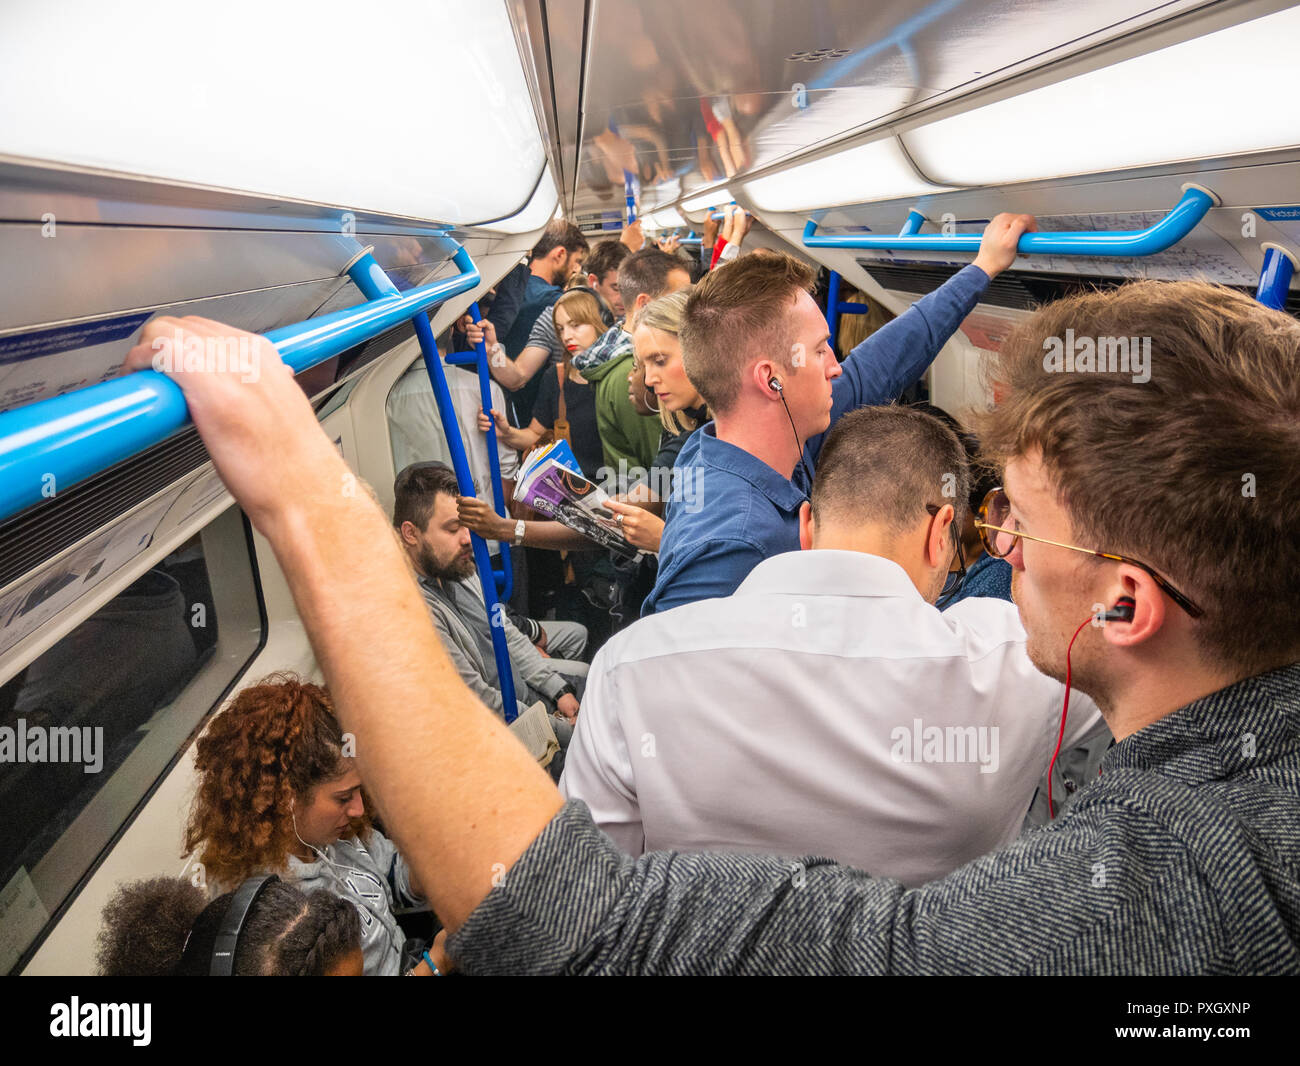 Commuters on crowded London Underground during rush hour, UK - Stock Image